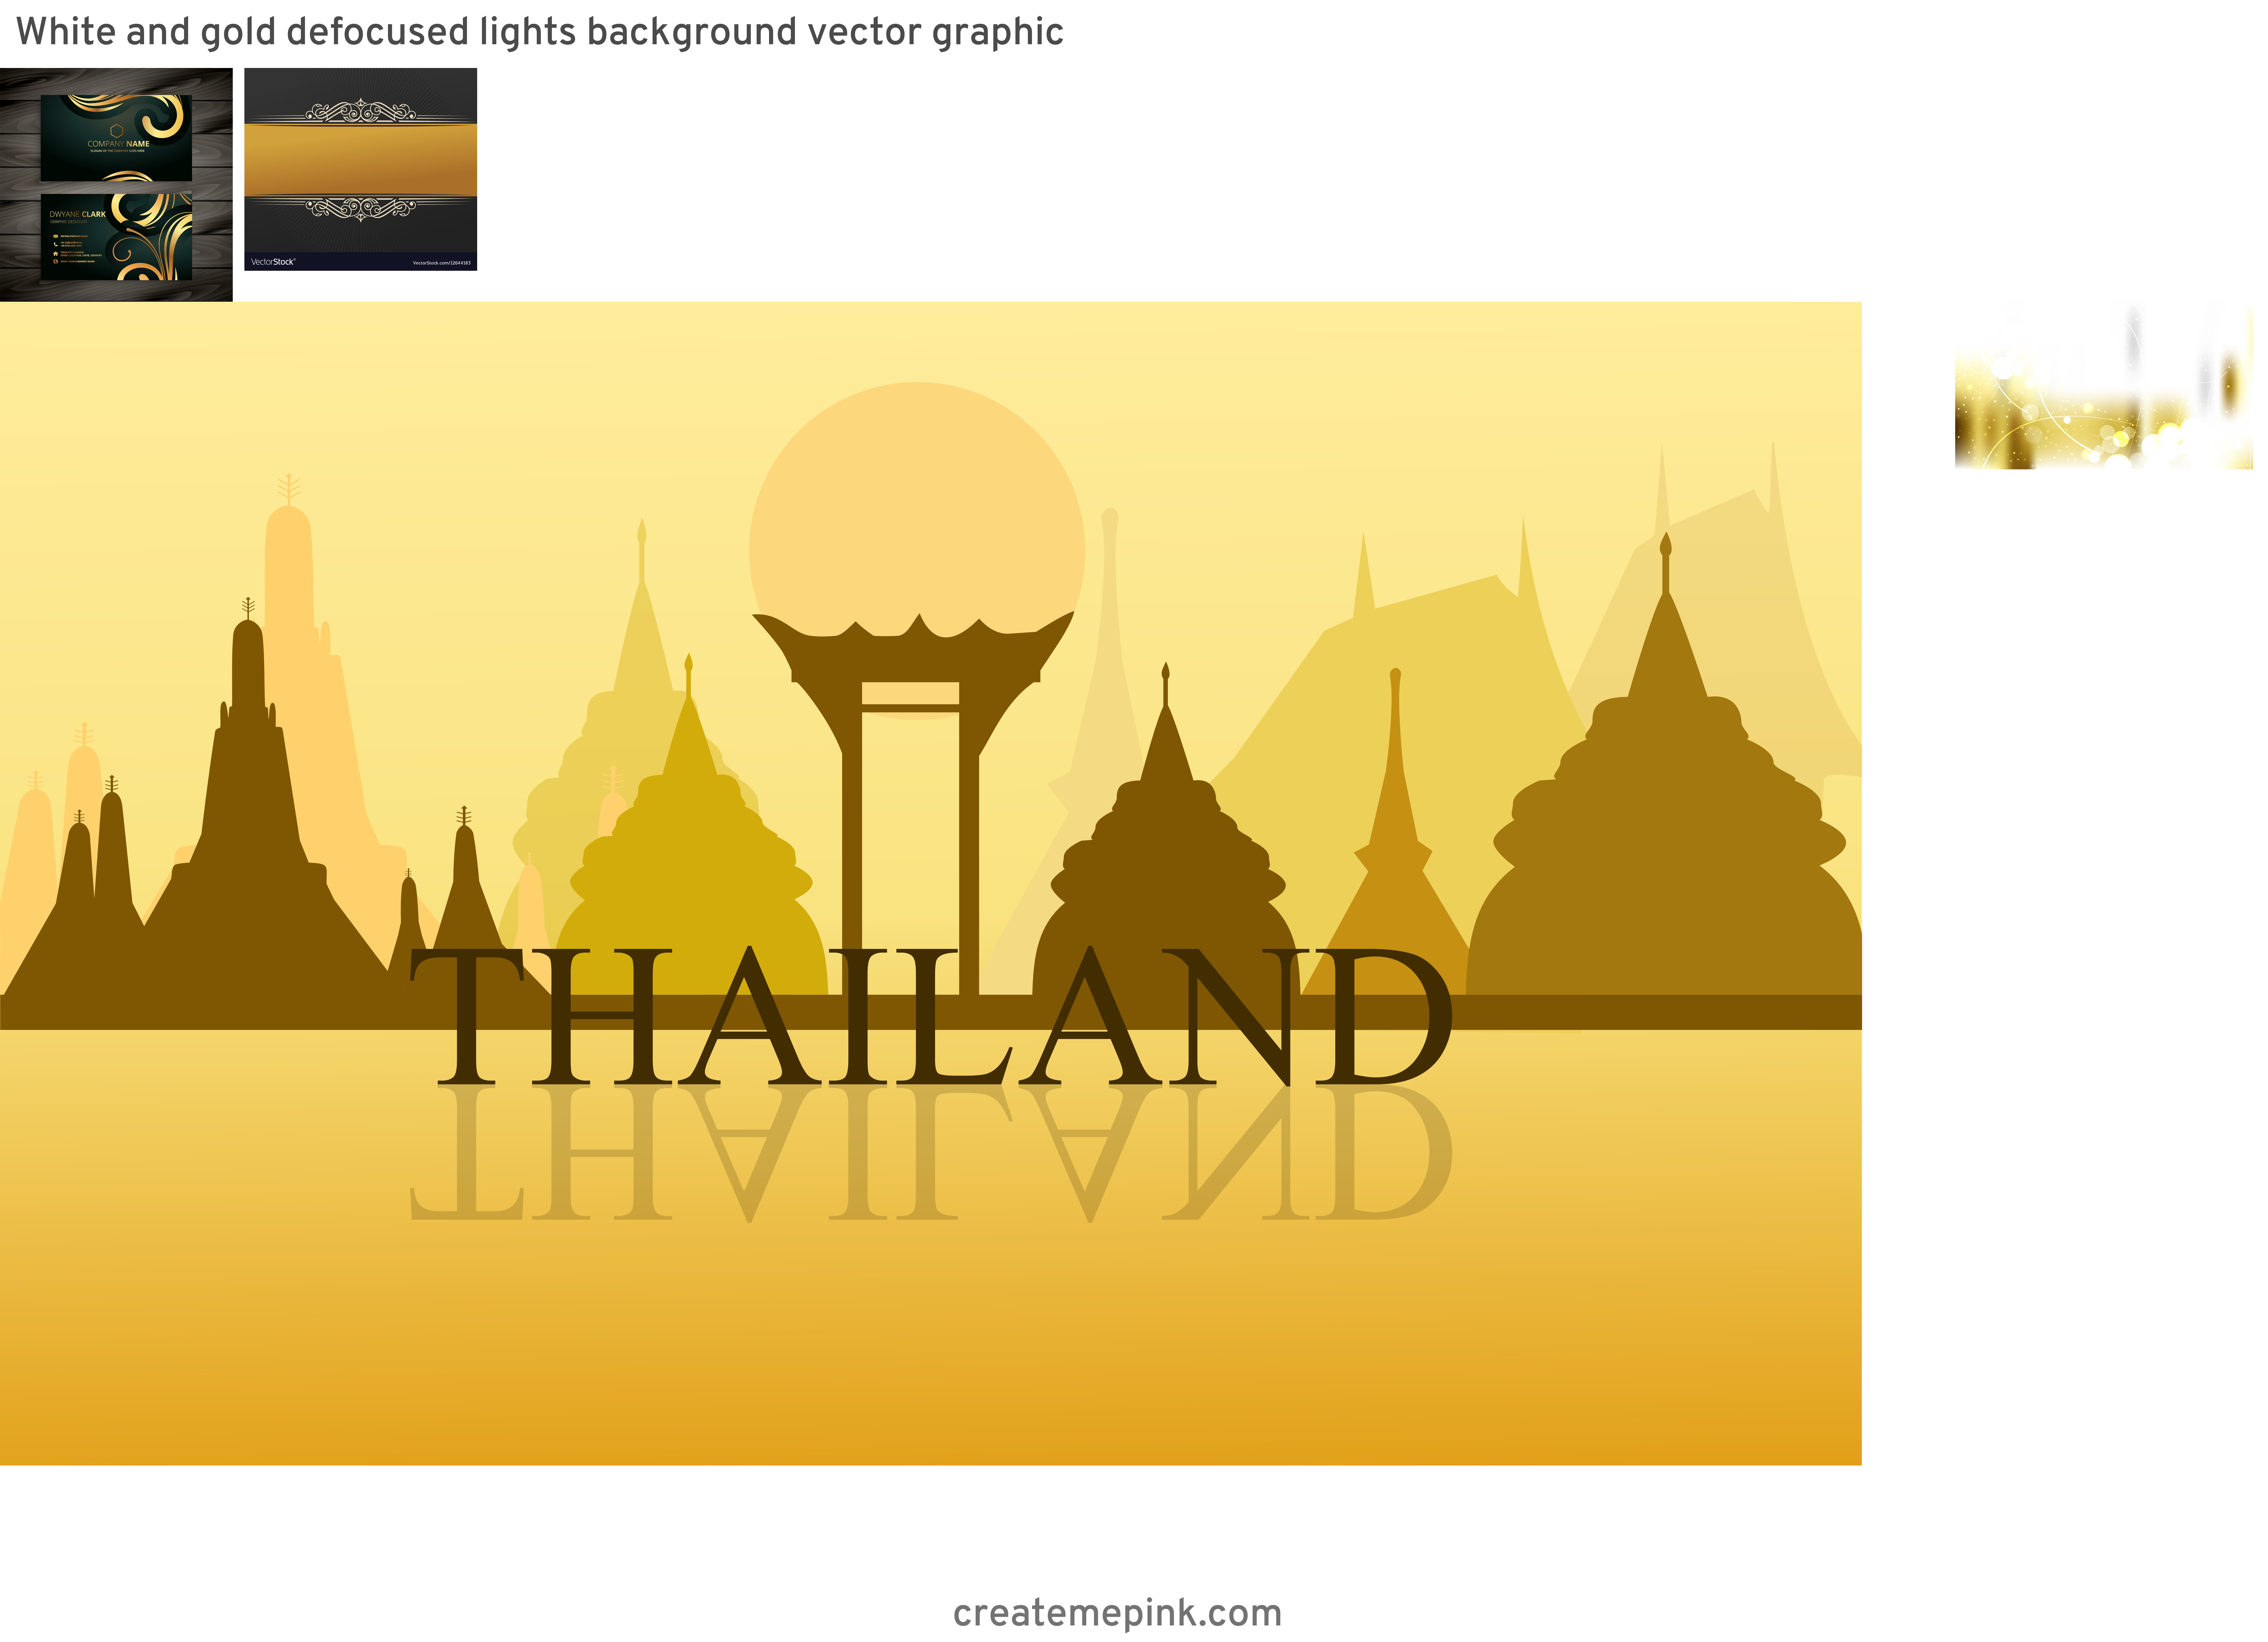 Gold Graphic Design Vectors: White And Gold Defocused Lights Background Vector Graphic